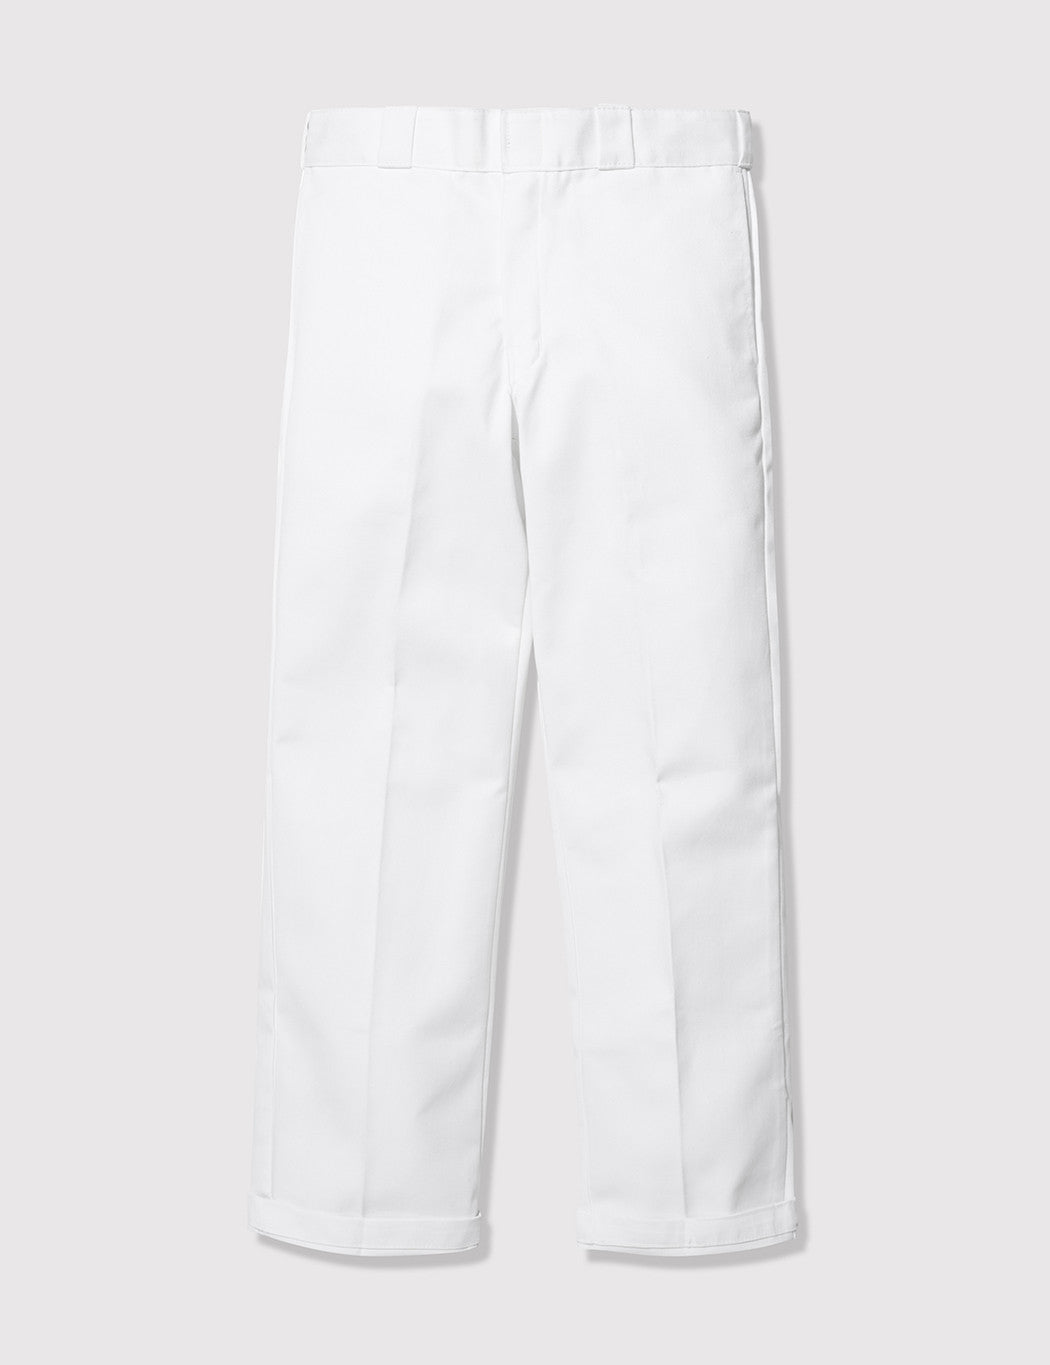 Dickies 874 Original Work Pant (Relaxed) - White